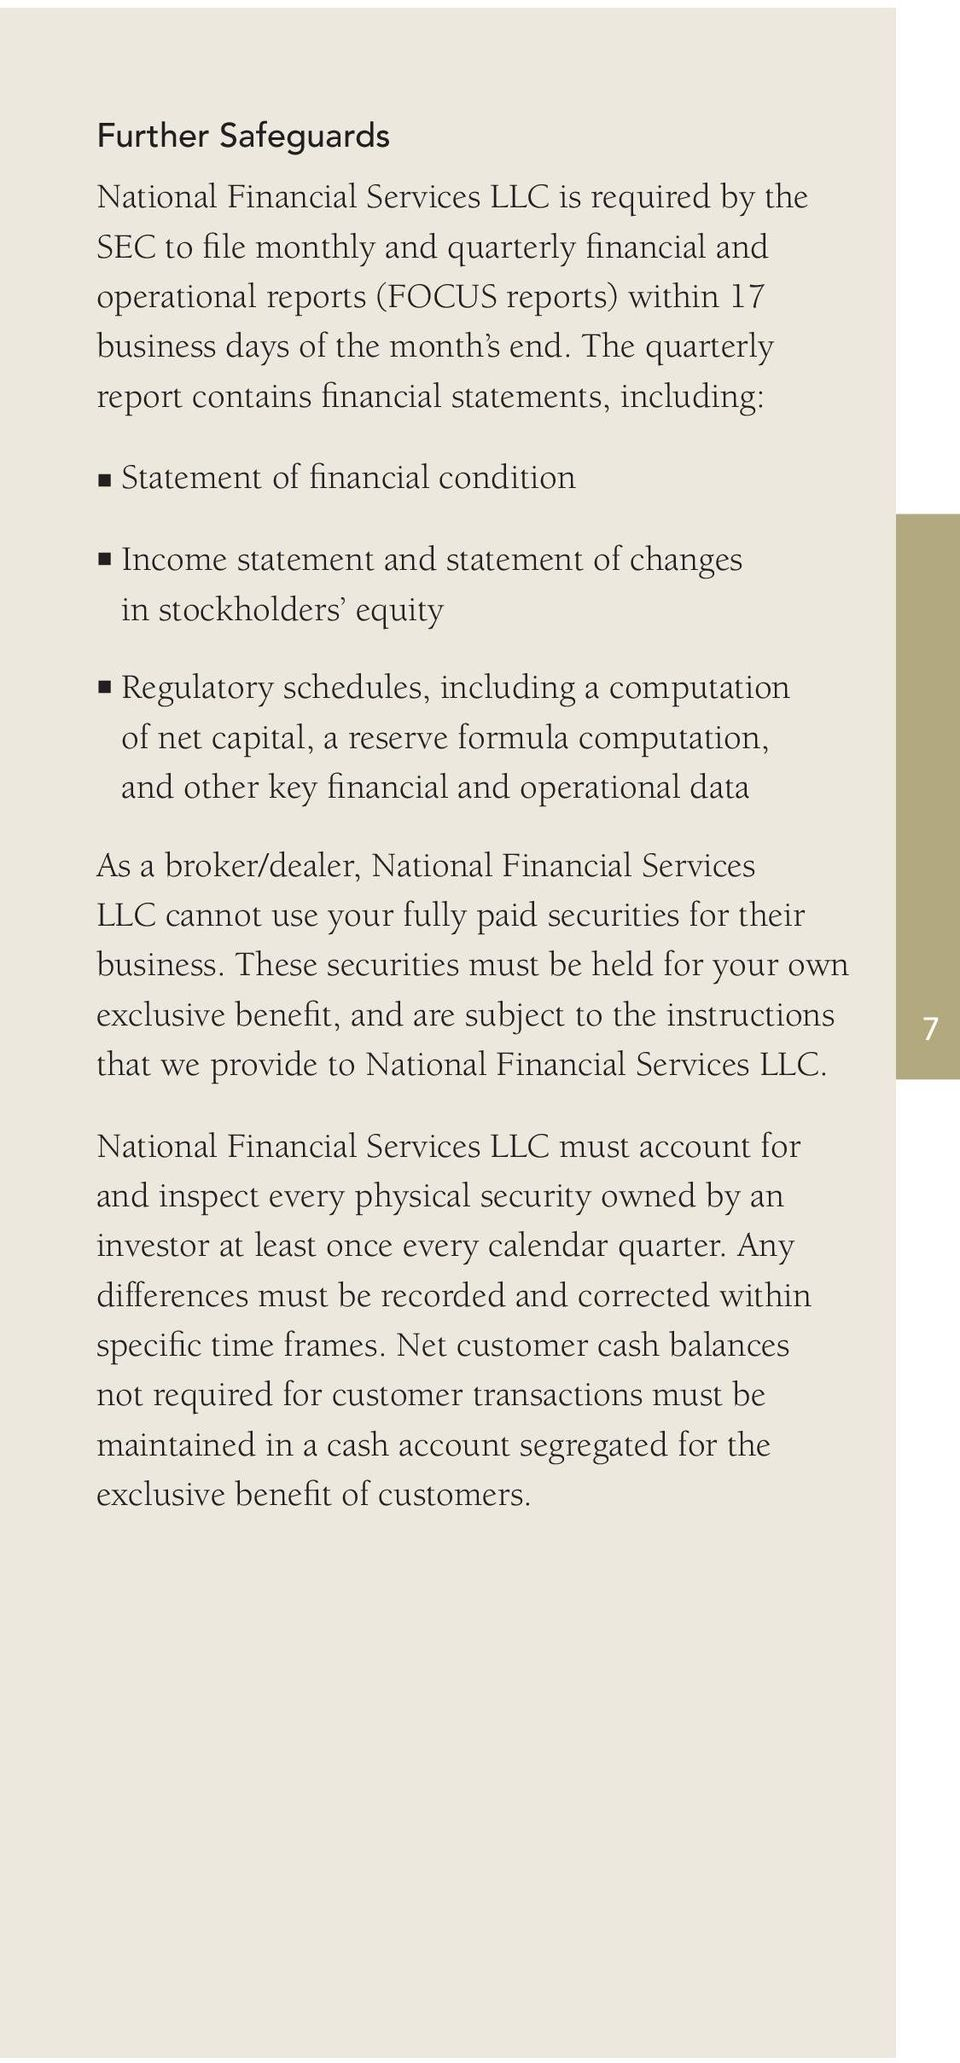 computation of net capital, a reserve formula computation, and other key financial and operational data As a broker/dealer, National Financial Services LLC cannot use your fully paid securities for